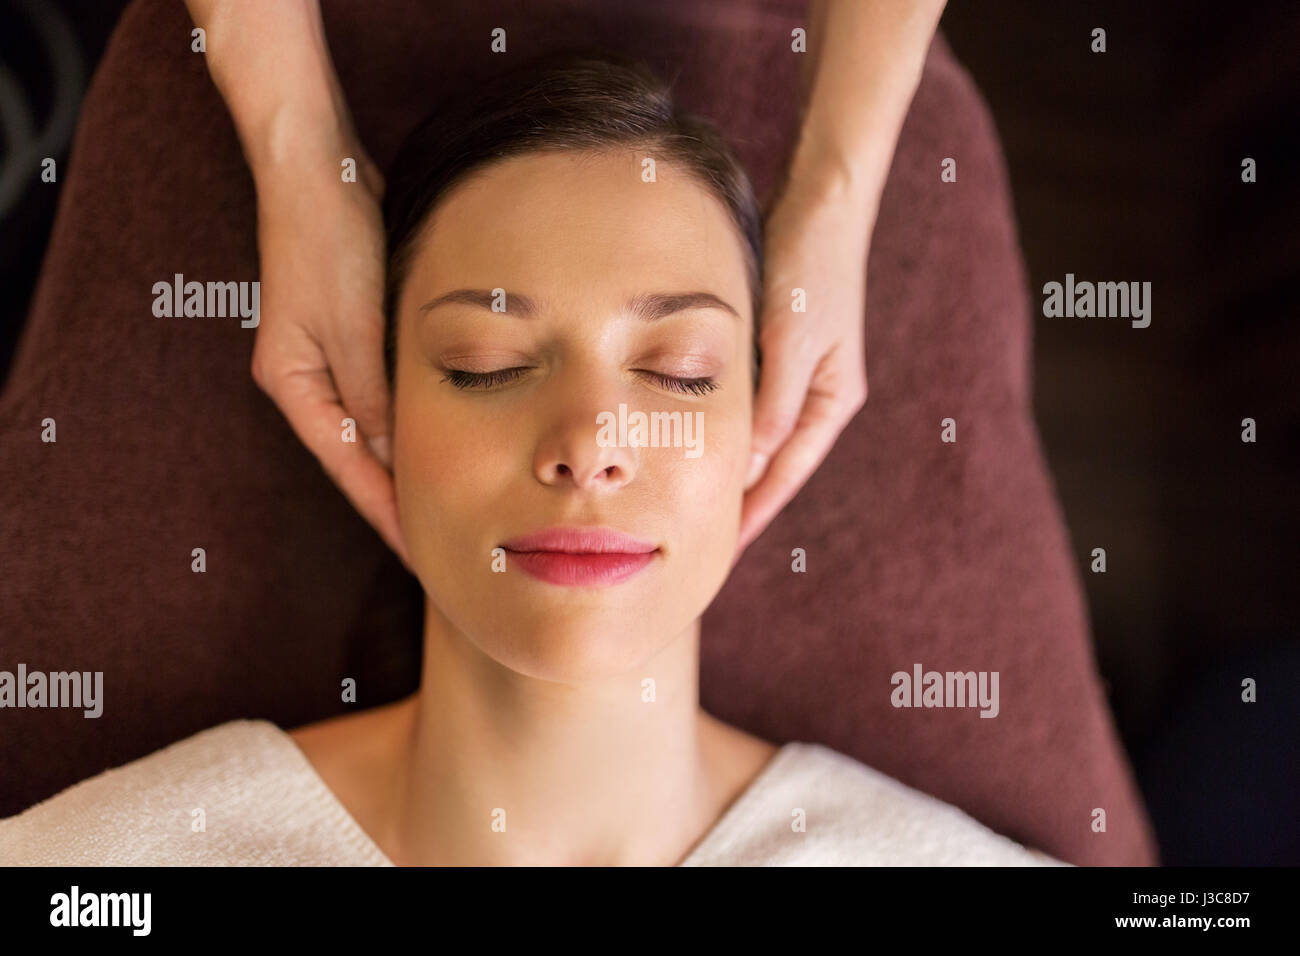 woman having face and head massage at spa - Stock Image